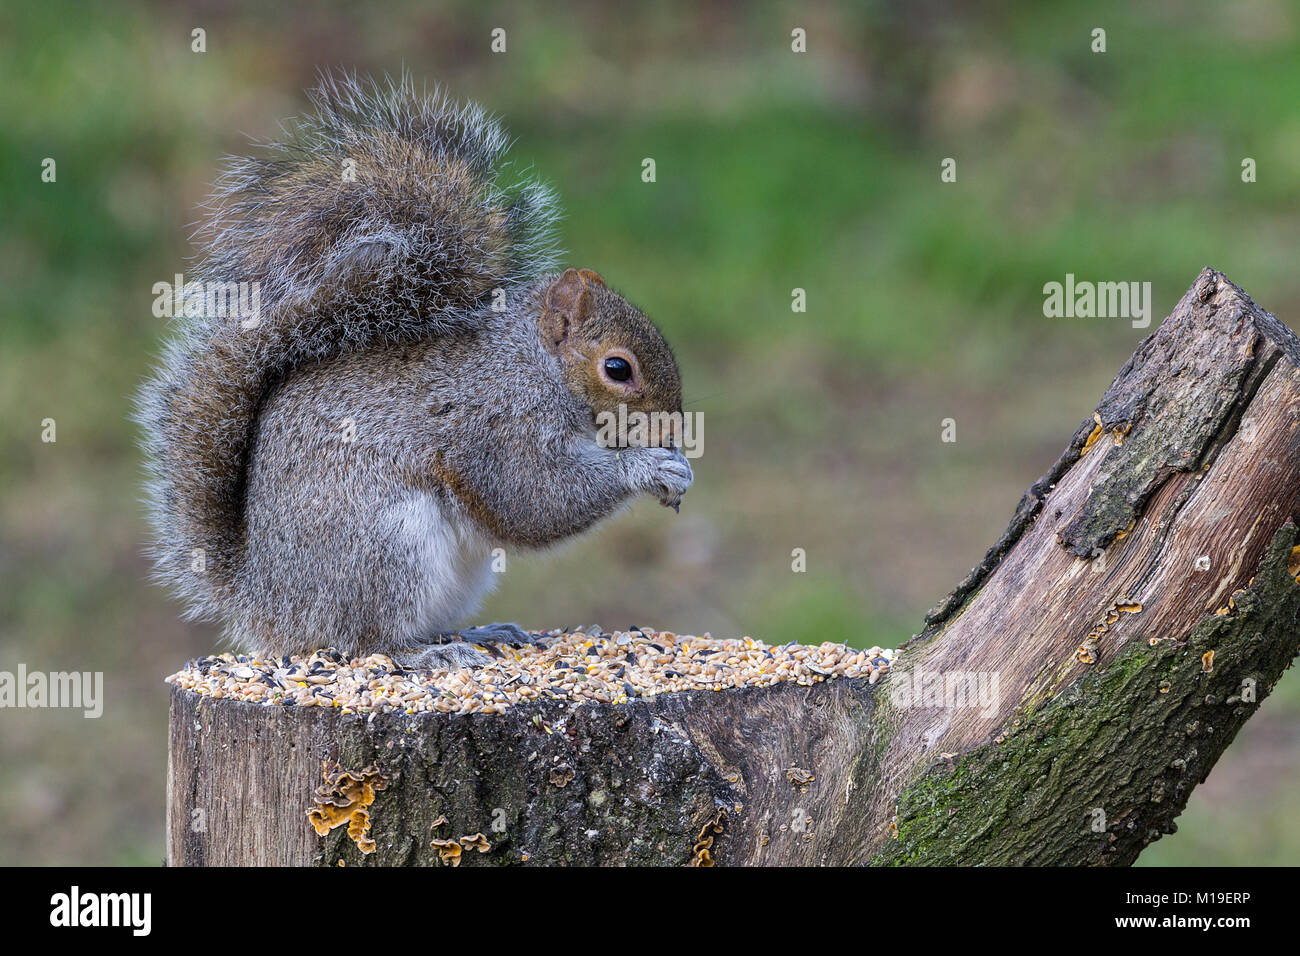 Grey squirrel (Sciurus carolinensis) feeding on bird seed at a hide in Warnham wildlife reserve Horsham West Sussex Stock Photo